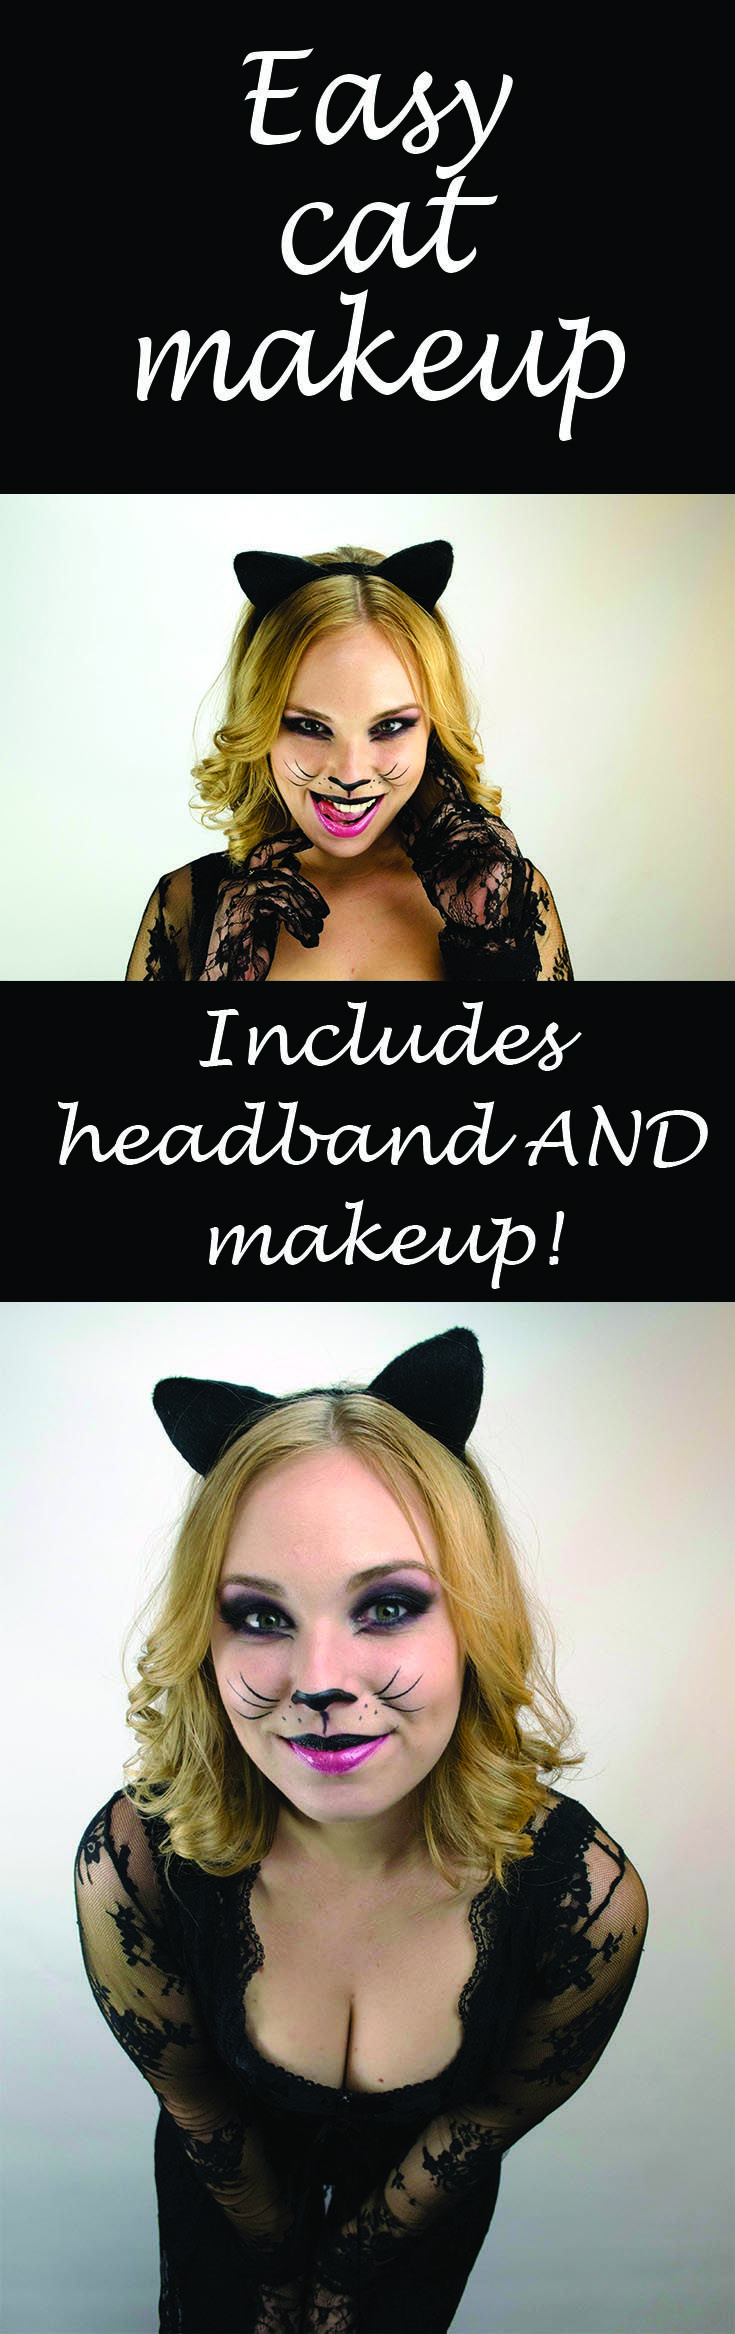 Simple cat makeup for those who want to add some character to that little black dress. Woochie's headbands slip right on and include the necessary colors to finalize the look.  Available this Halloween!